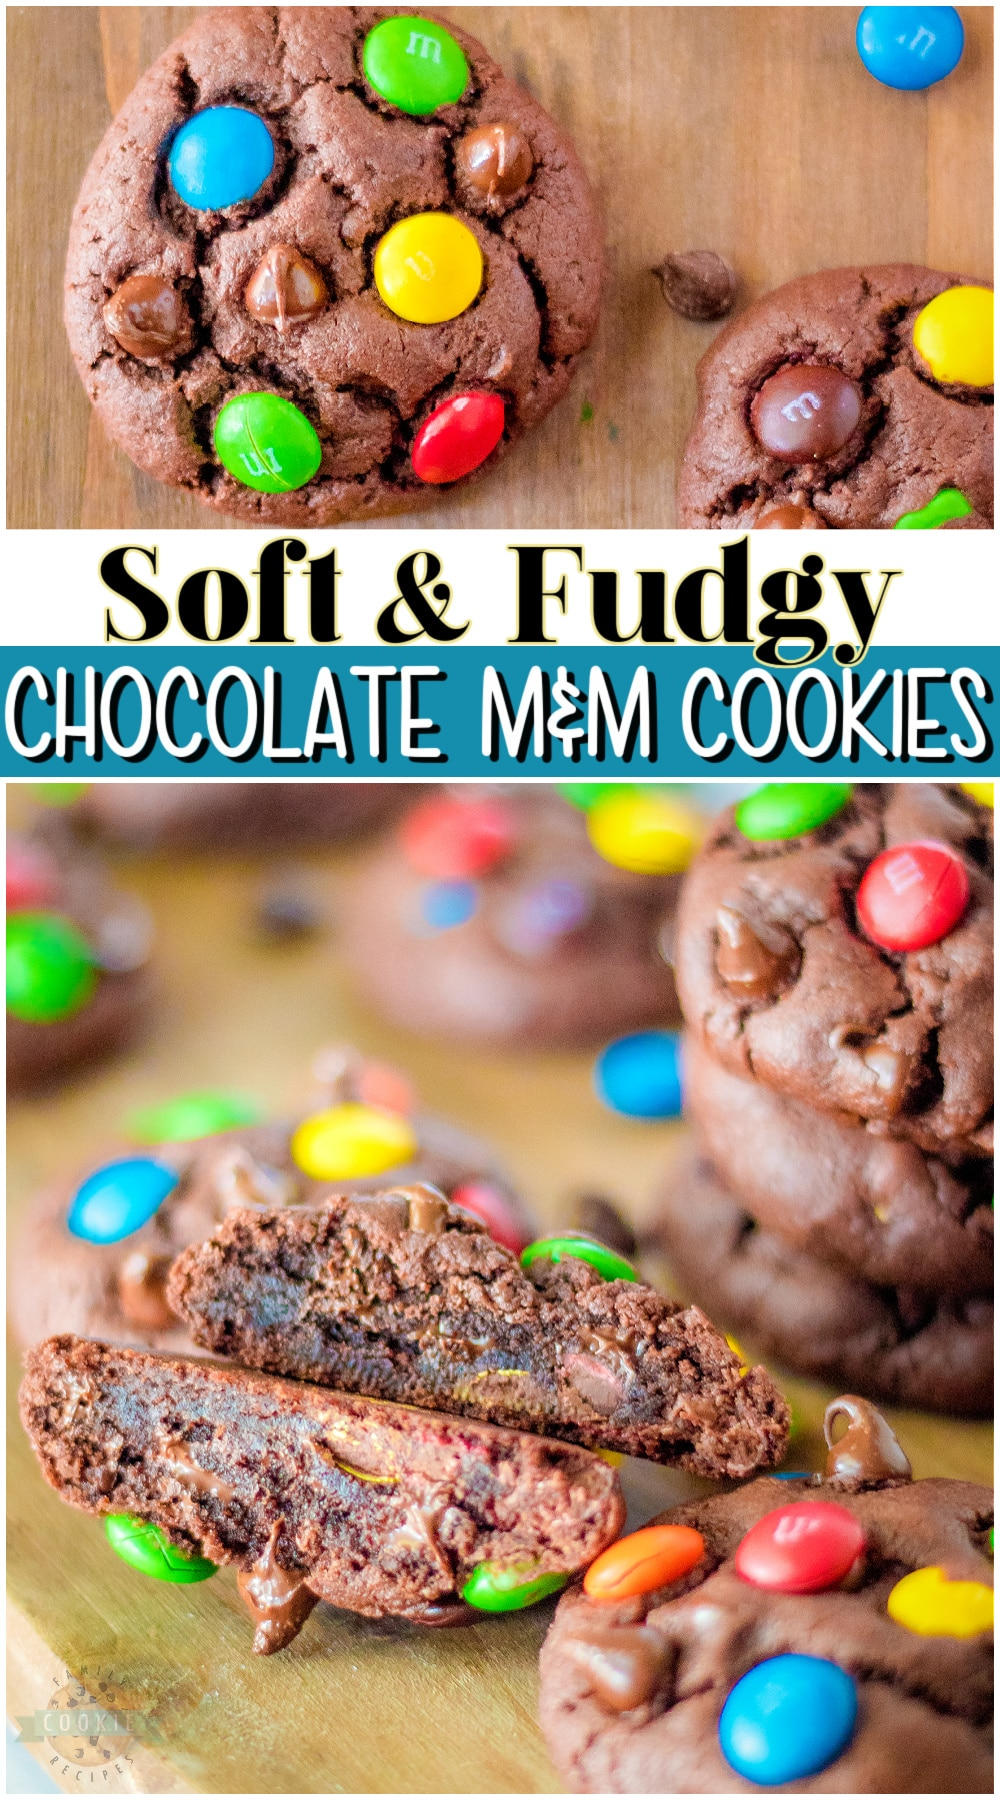 Chocolate M&M cookies that are soft, chewy and loaded with chocolate! Simple M and M pudding cookie recipe made with classic ingredients that everyone adores. via @familycookierecipes